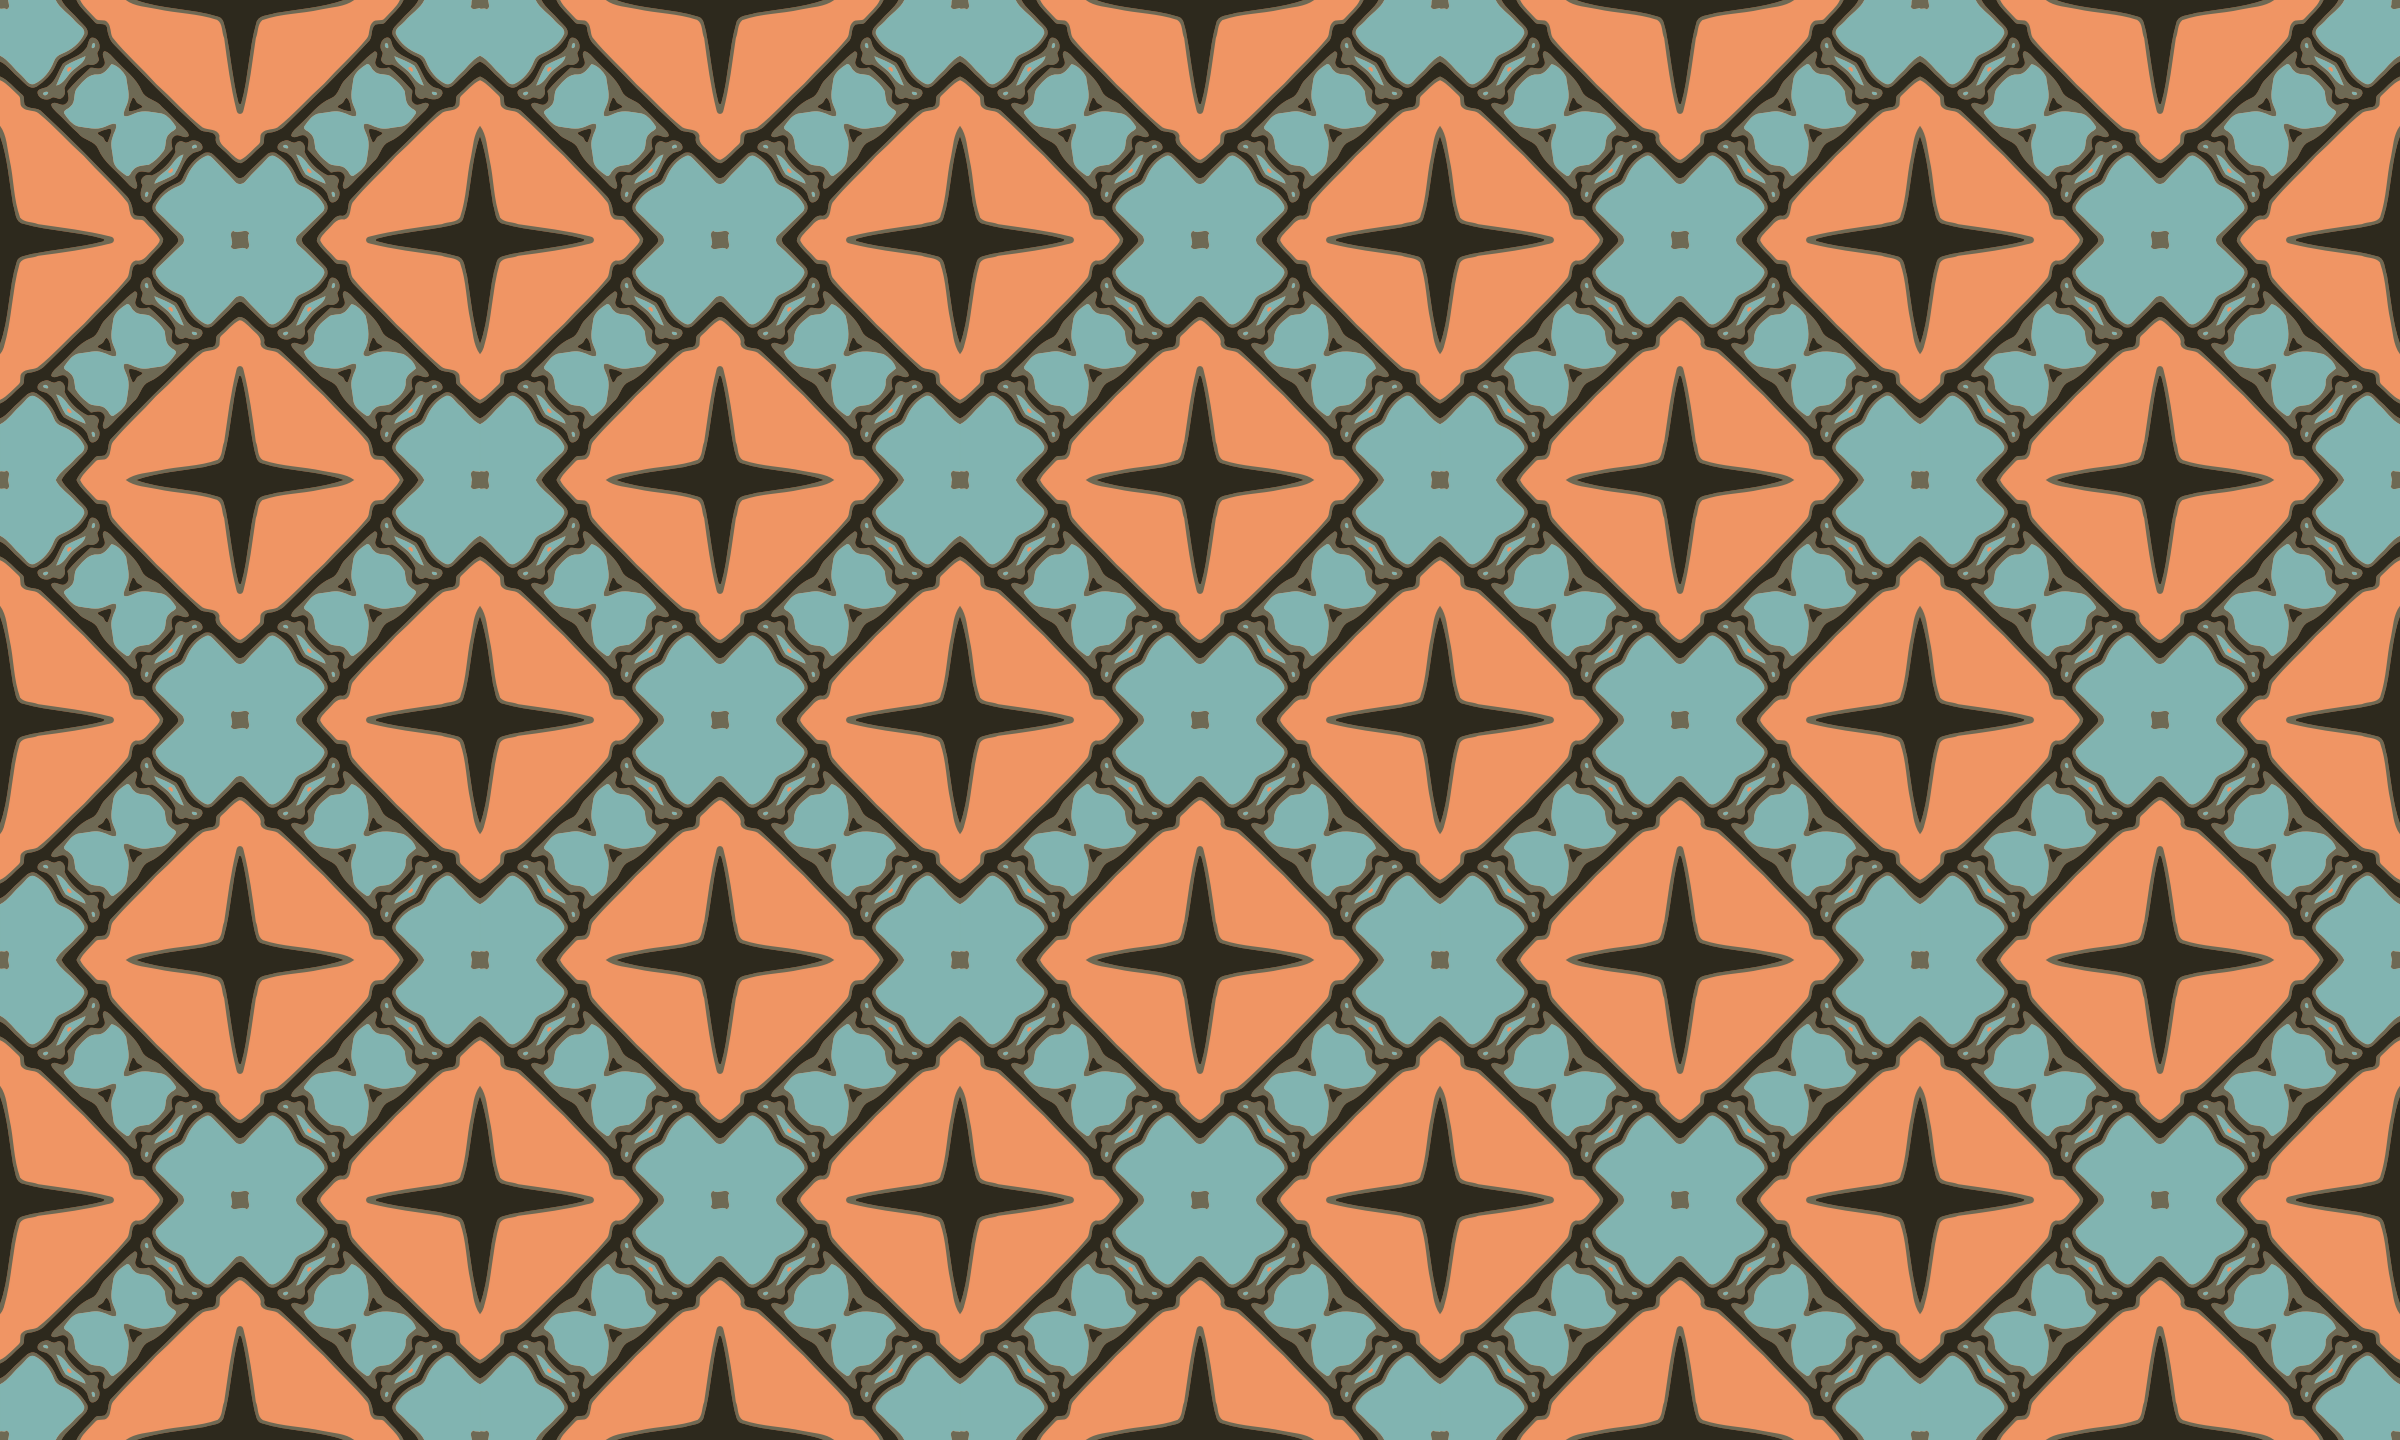 Background pattern 287 by Firkin